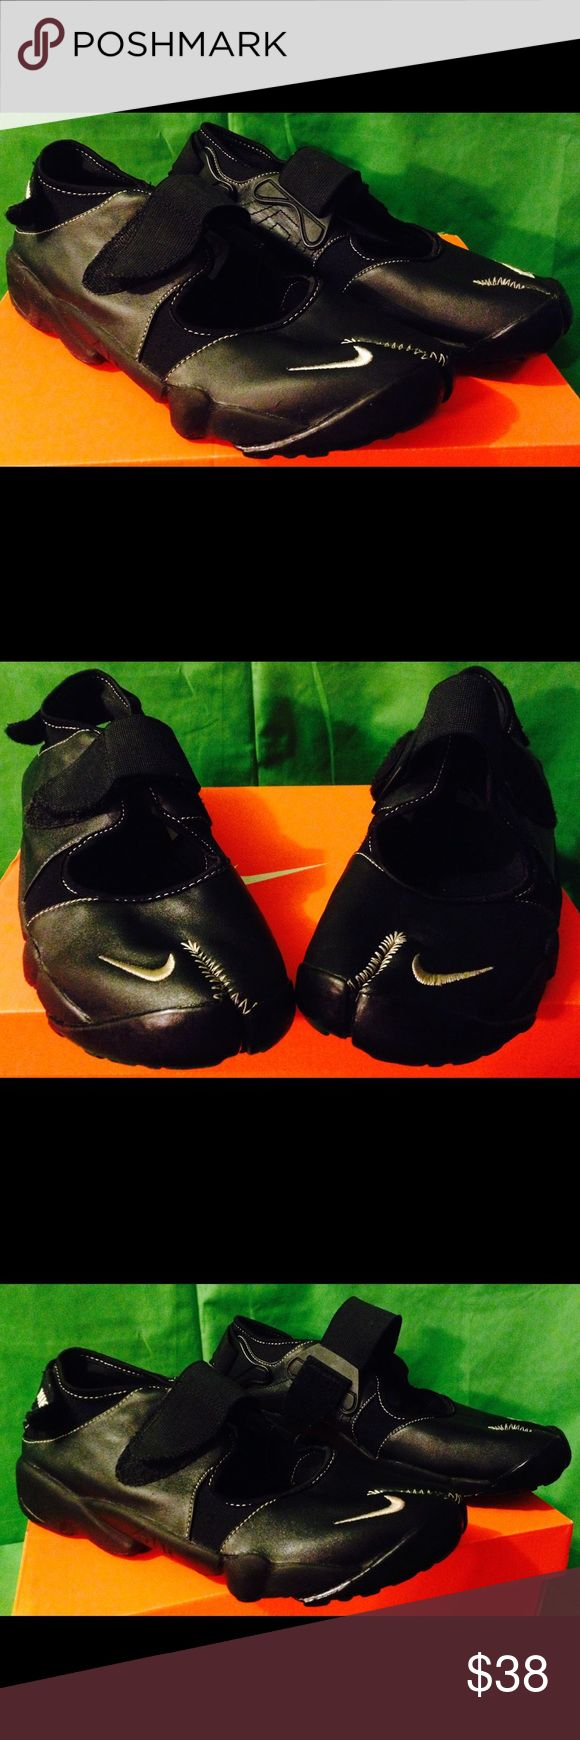 Nike Air Rift Split Toed Sneakers Sz. 11 Nike Air Rift Split Toed Sneakers Sz. 11. These kicks are in Great condition. Very low mileage. See photos for more details. Nike Shoes Sneakers